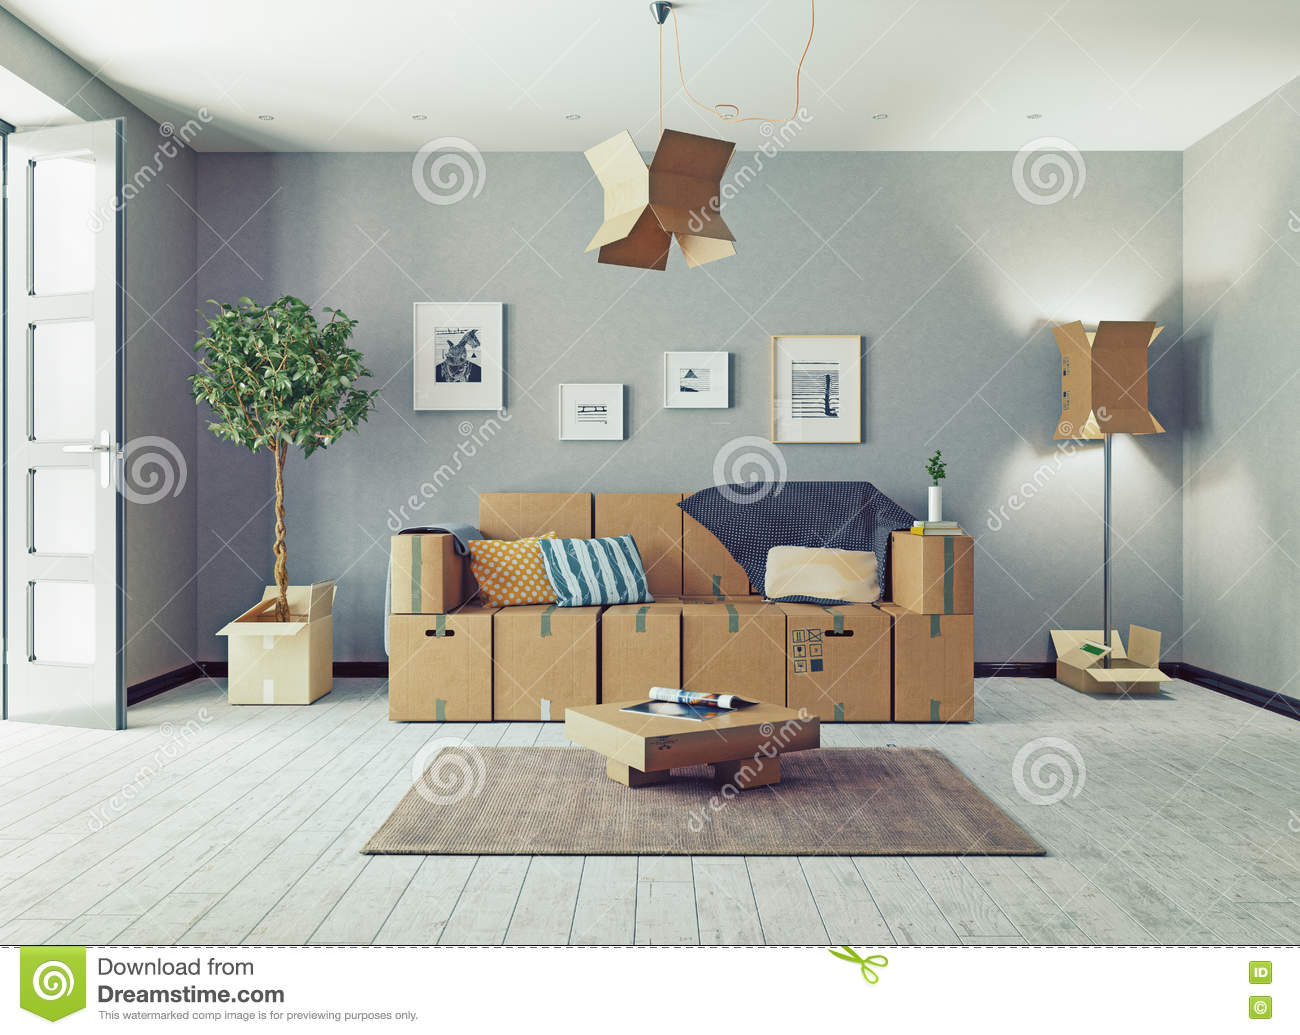 Cardboard Boxes Design Room Stock Illustration Illustration Of Move Apartment 95372645